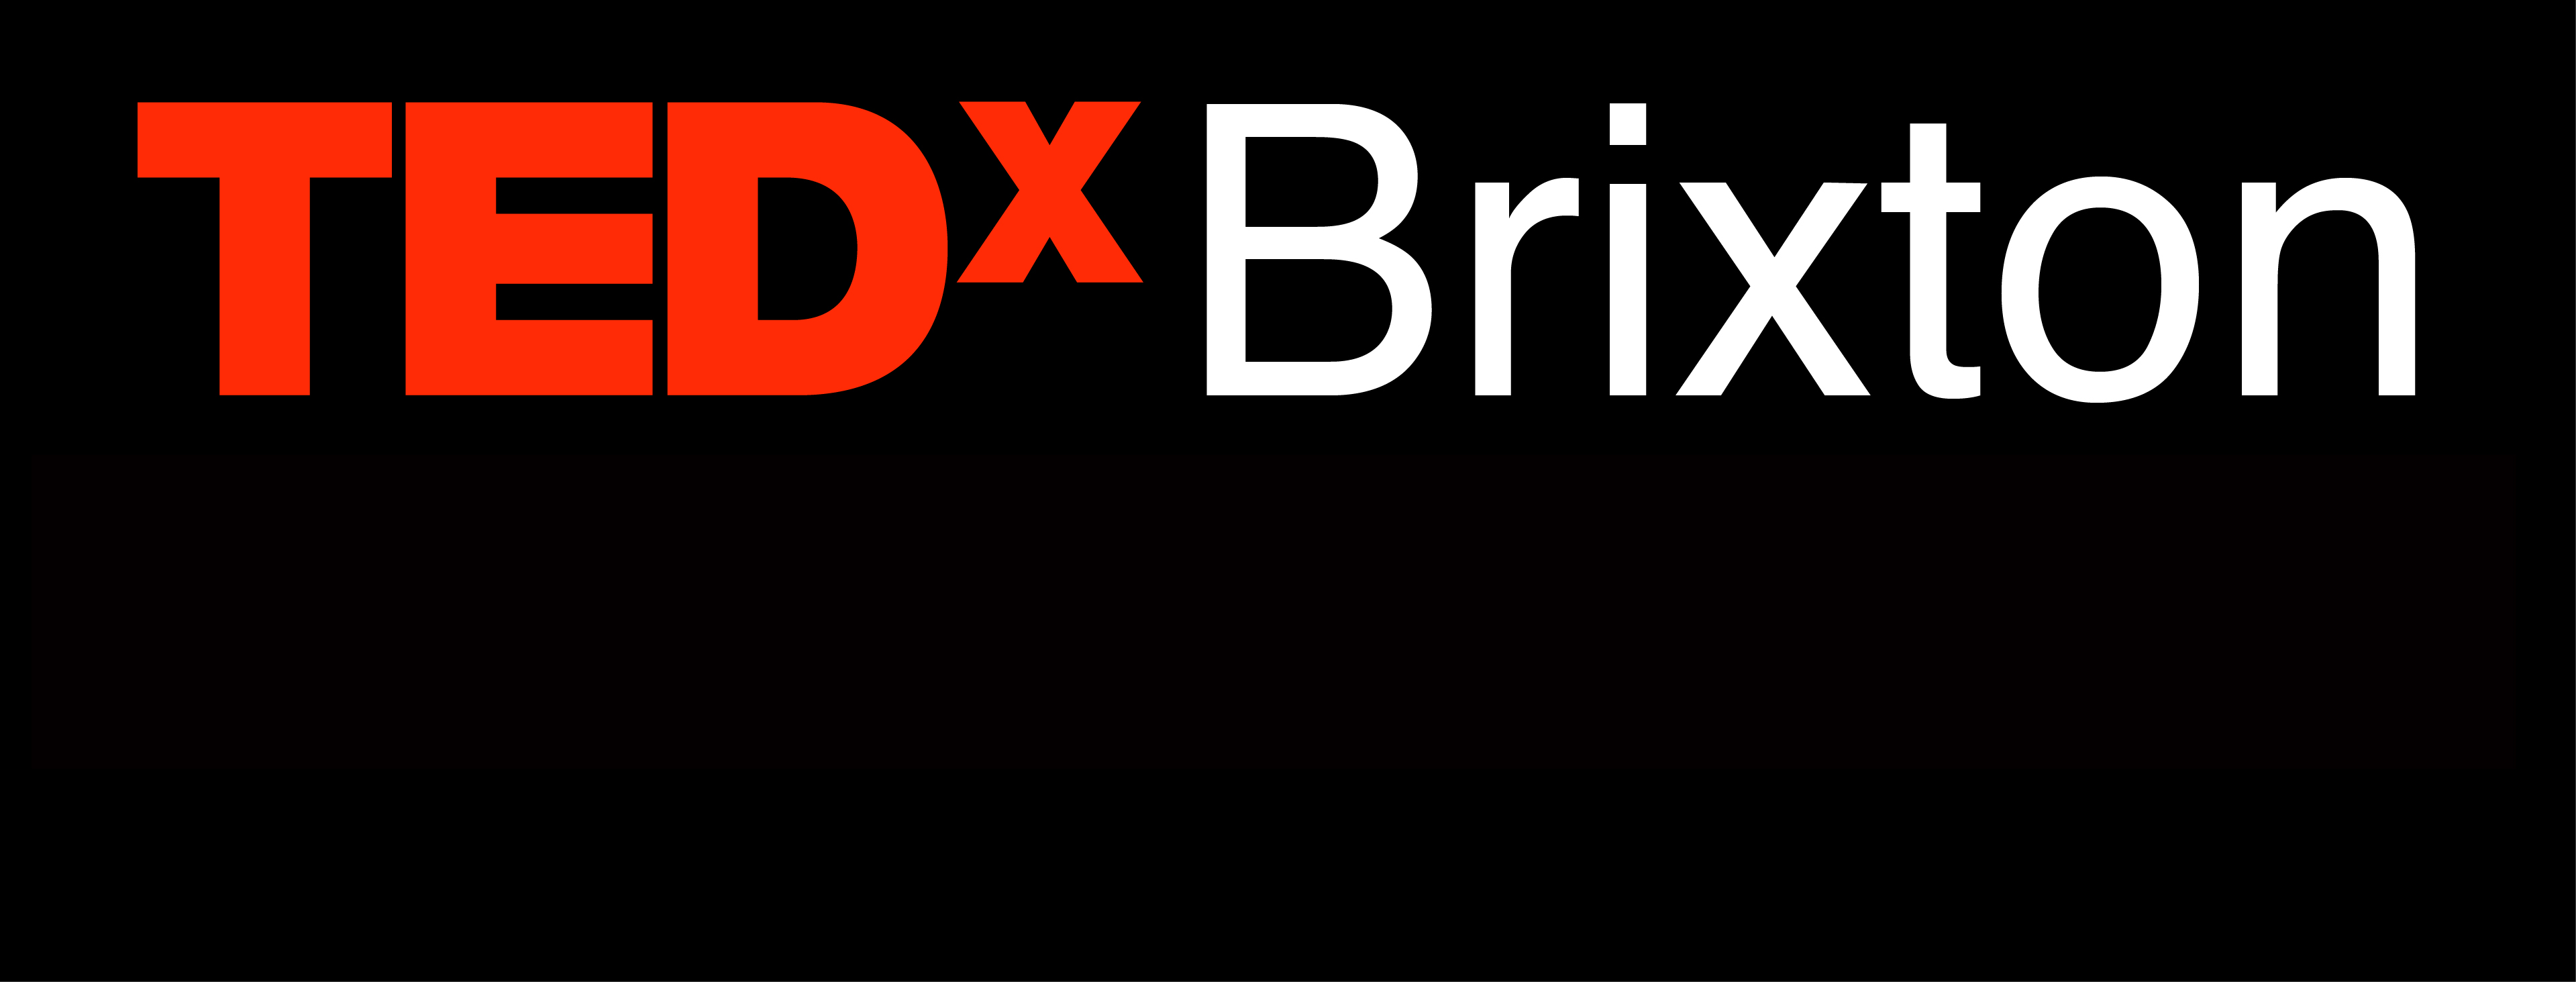 tedxbrixton_black-big